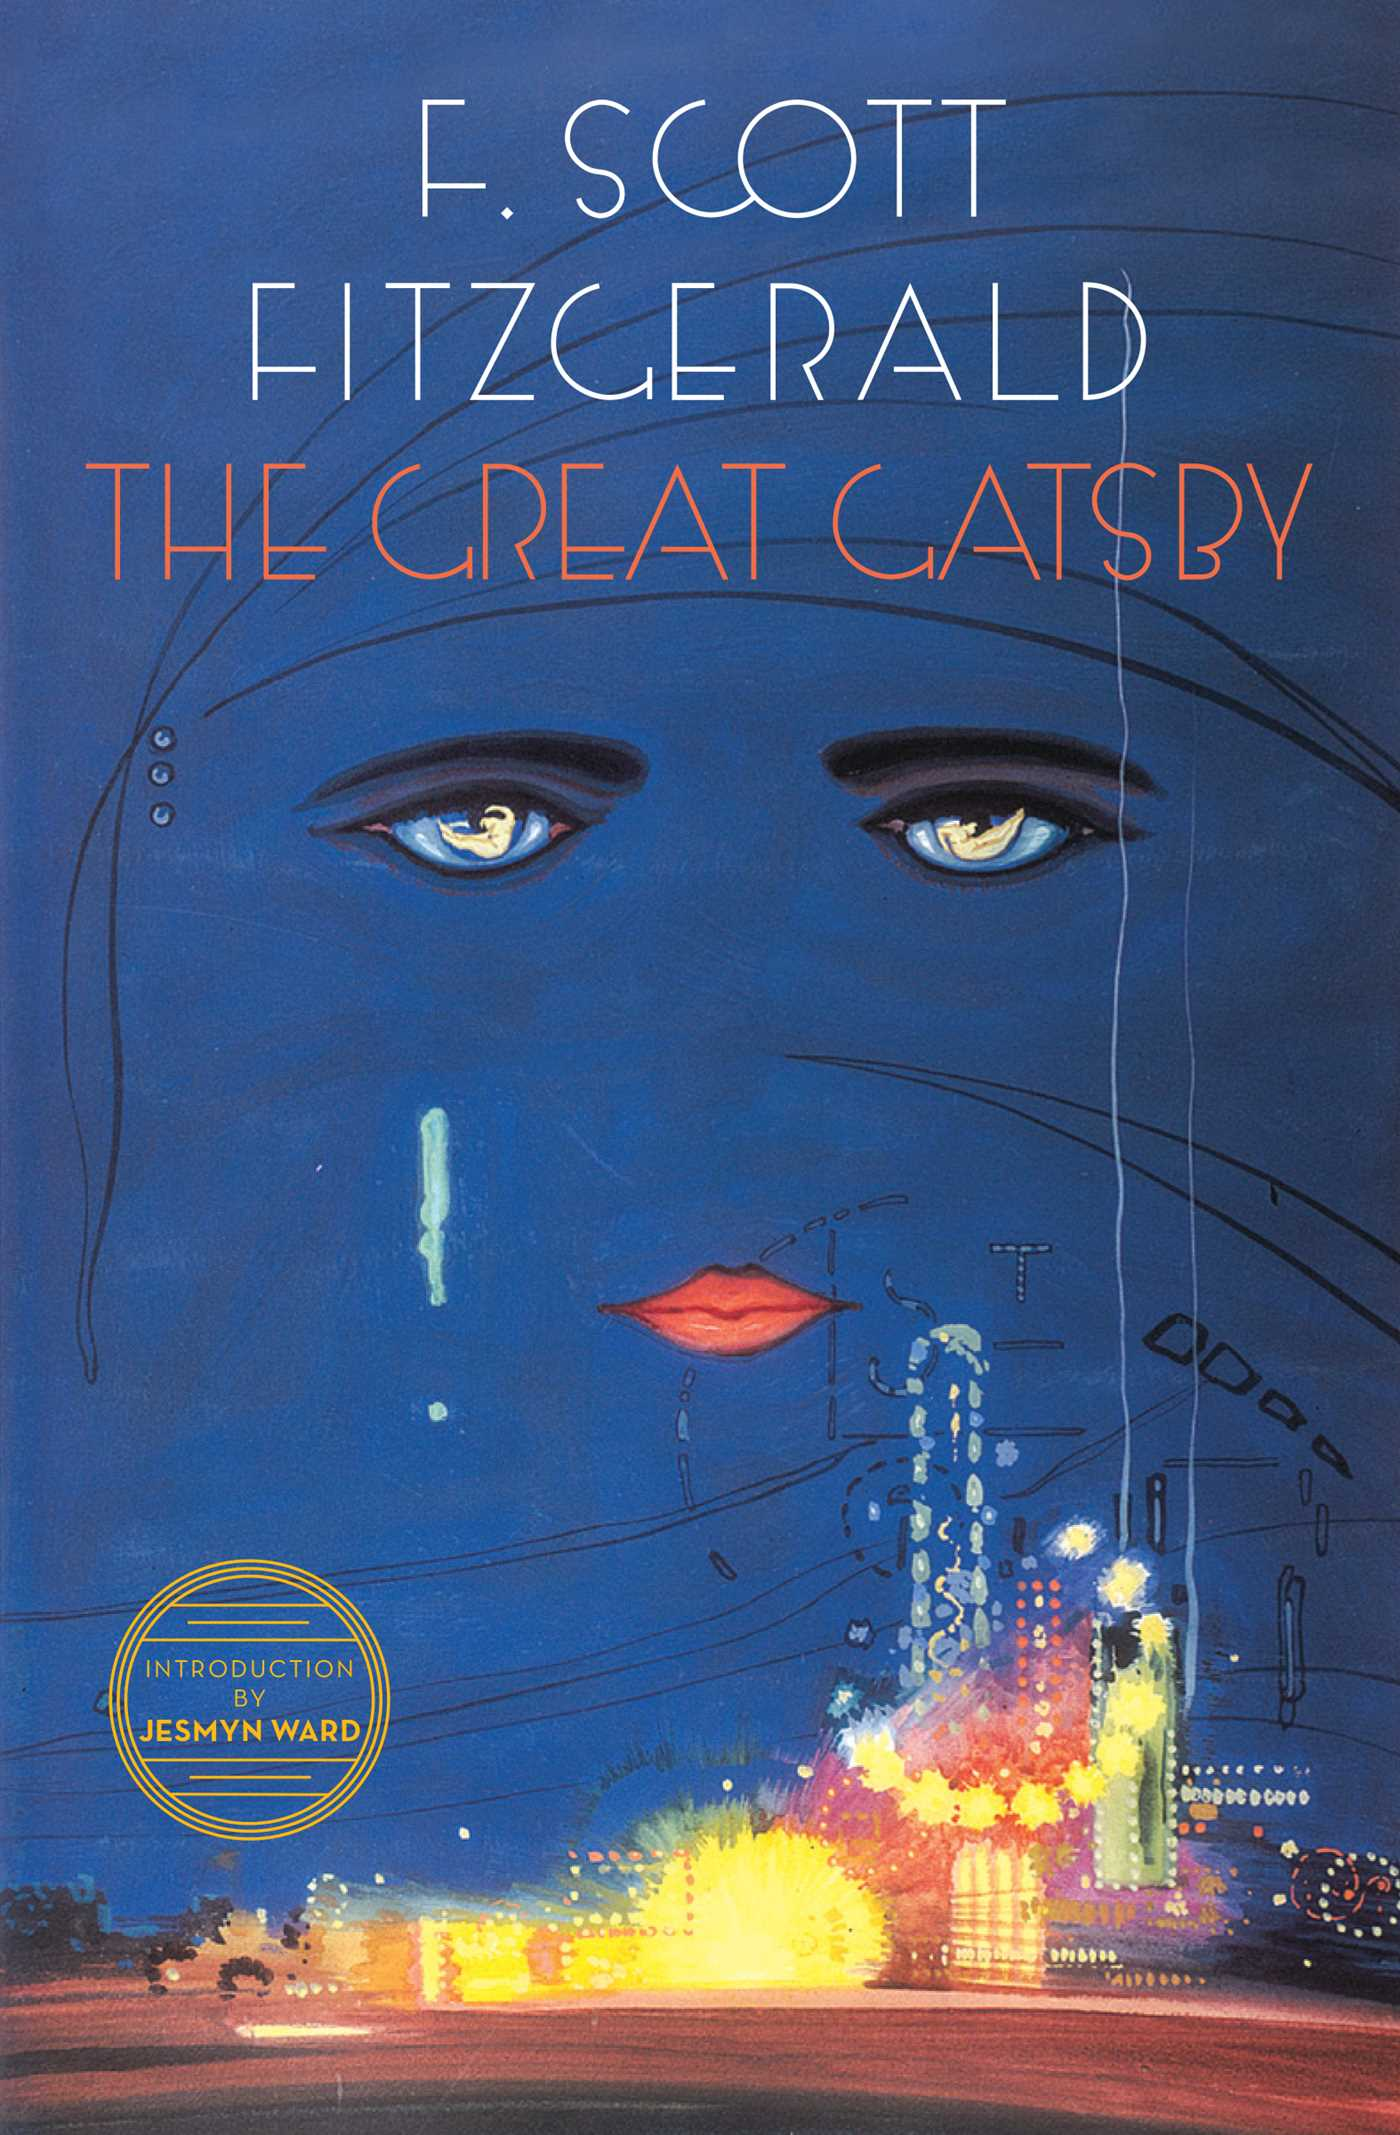 026 Essay Example The Great Gatsby Topics 9780743273565 Hr Exceptional Prompts American Dream Questions And Answers Research Full